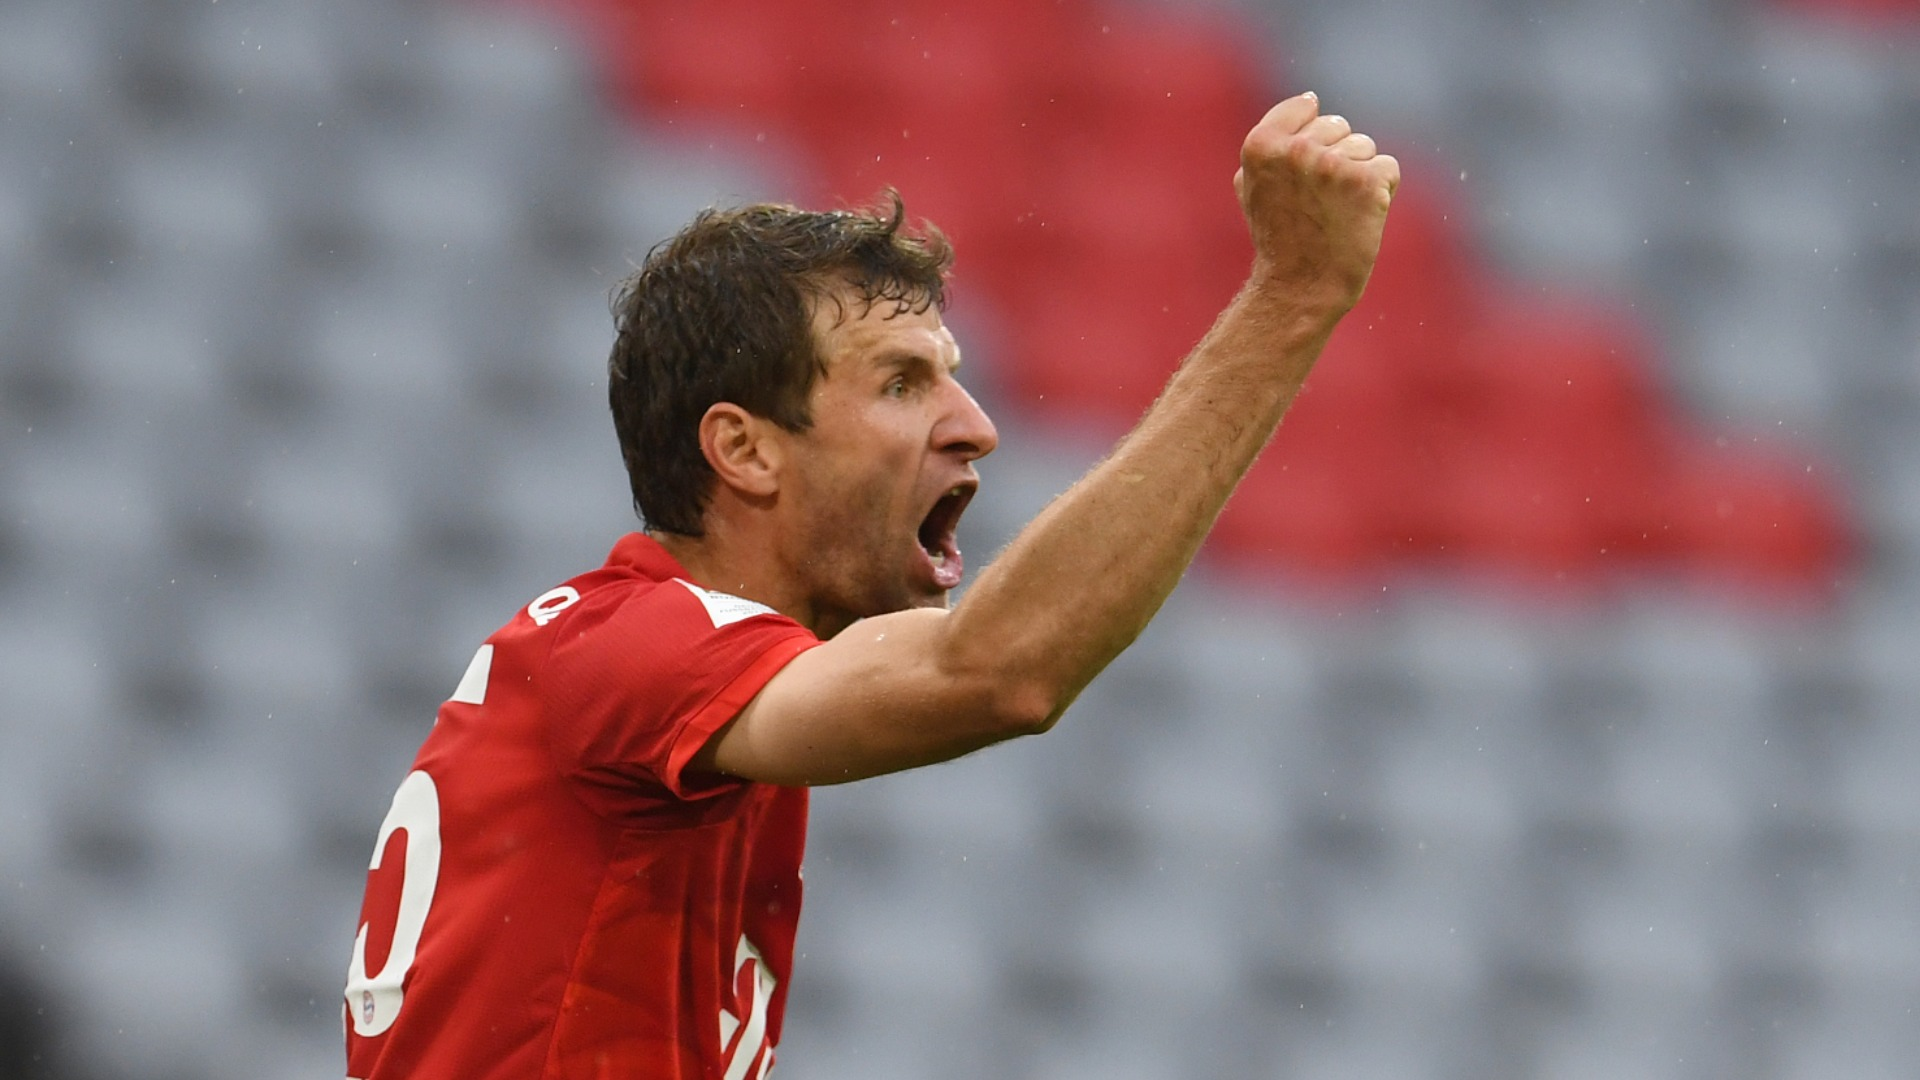 Bayern Munich 5-2 Eintracht Frankfurt: Muller and Davies star to tee up tantalising Klassiker